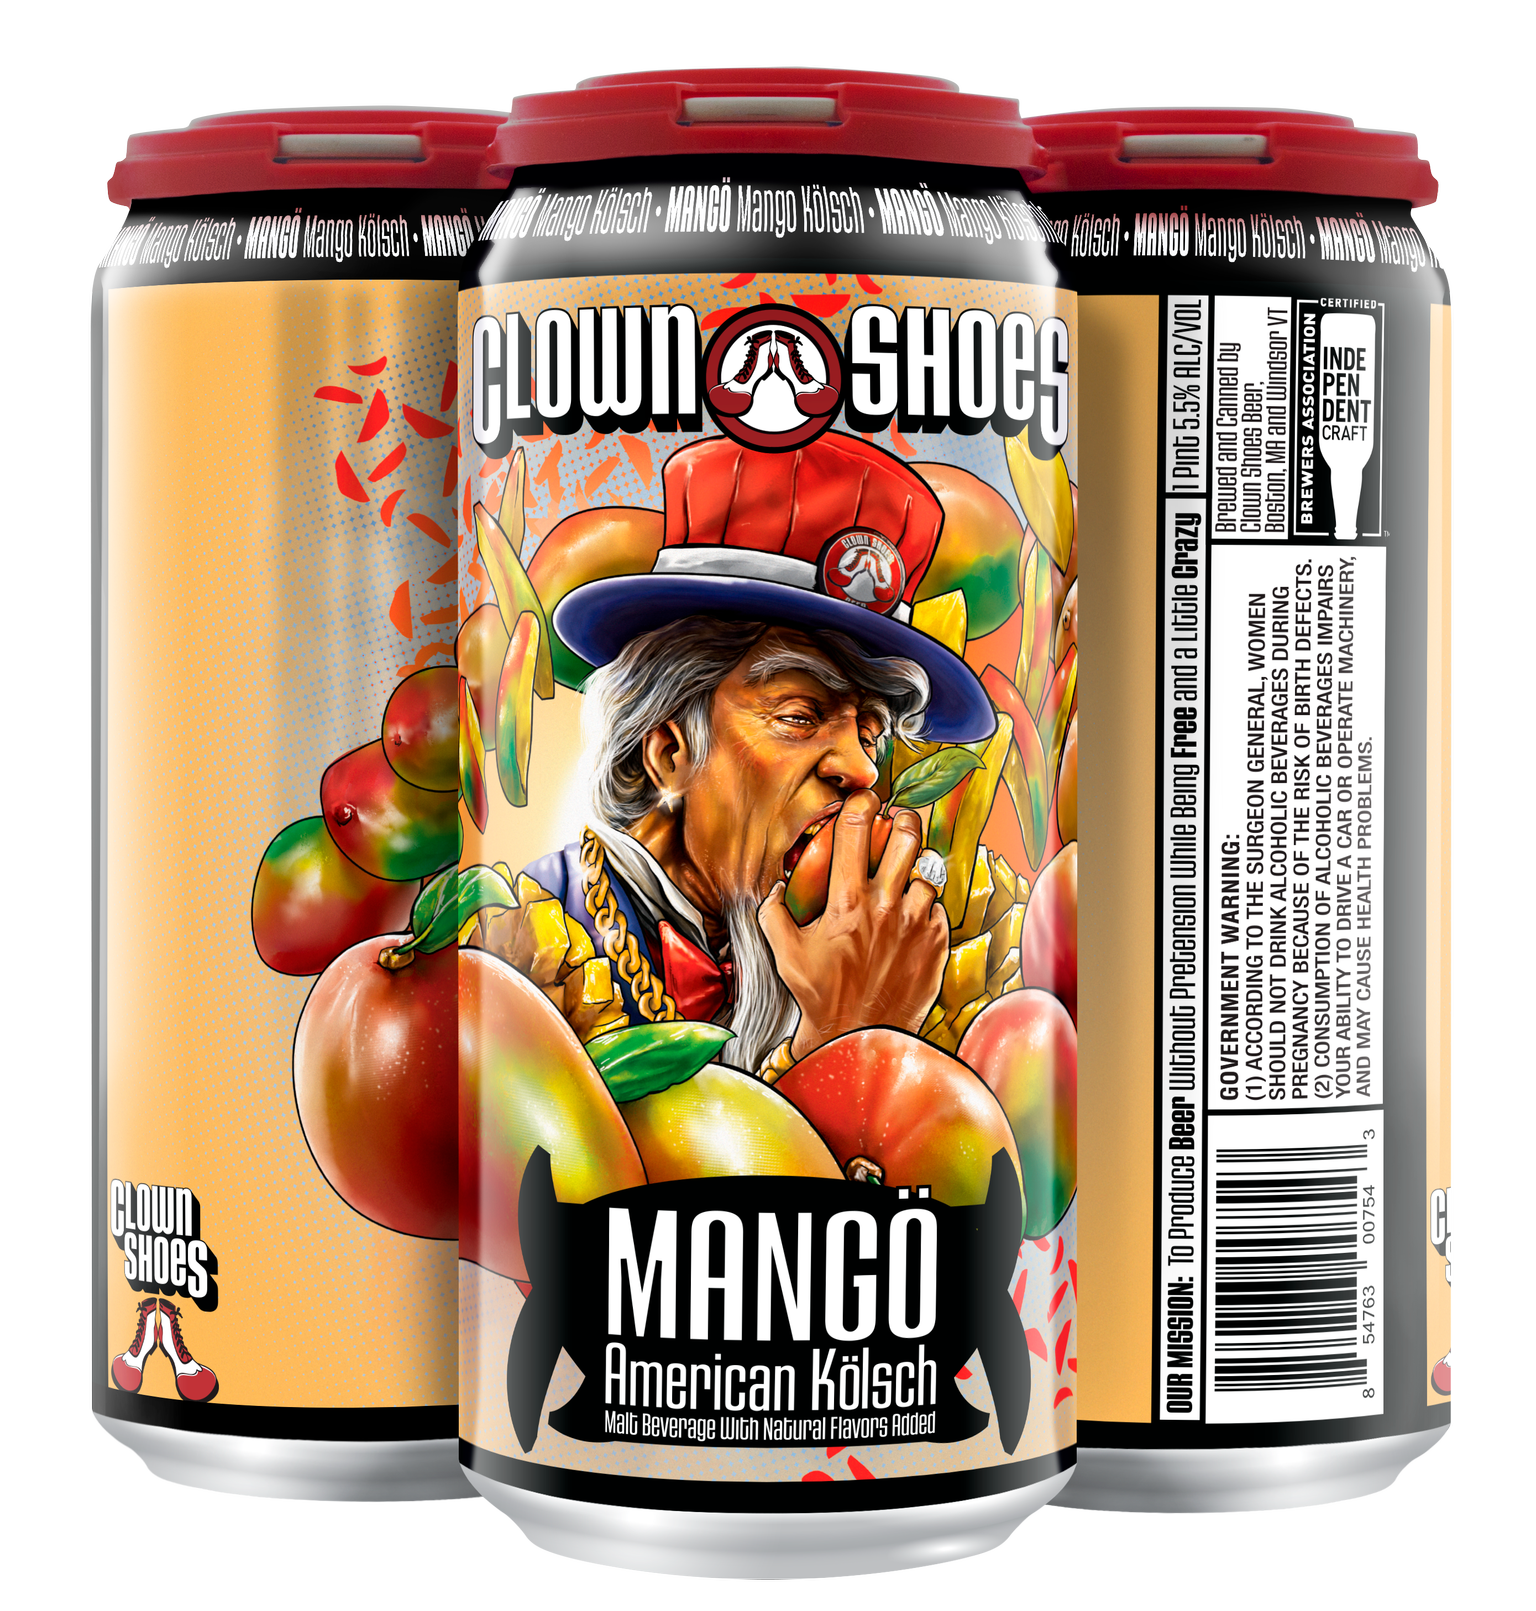 Mango Farm 4-pack 16 oz can